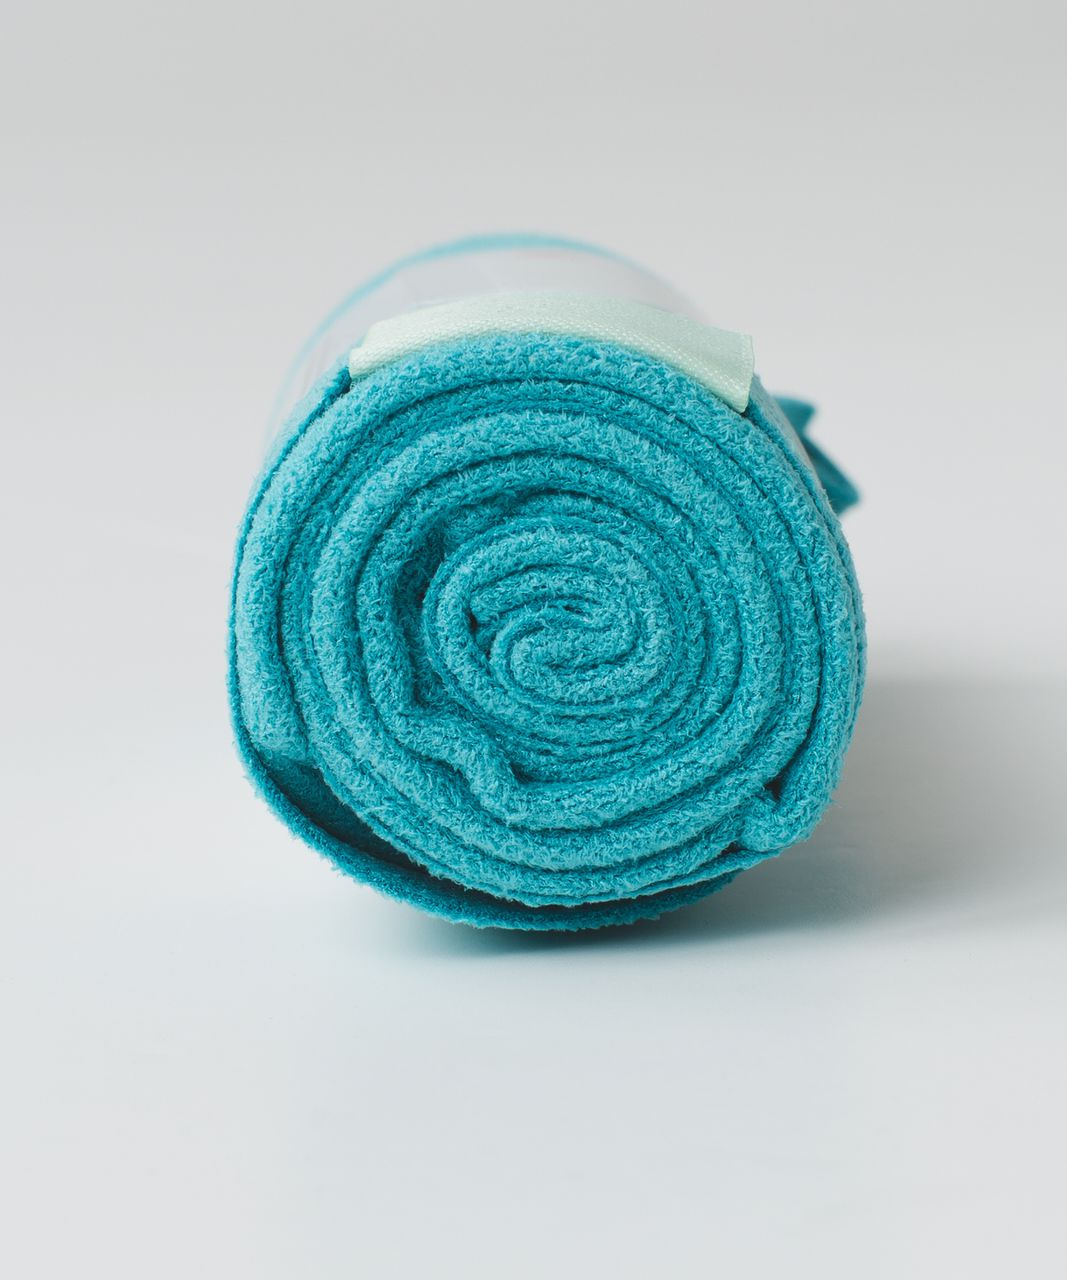 Lululemon The (Small) Towel - Peacock Blue